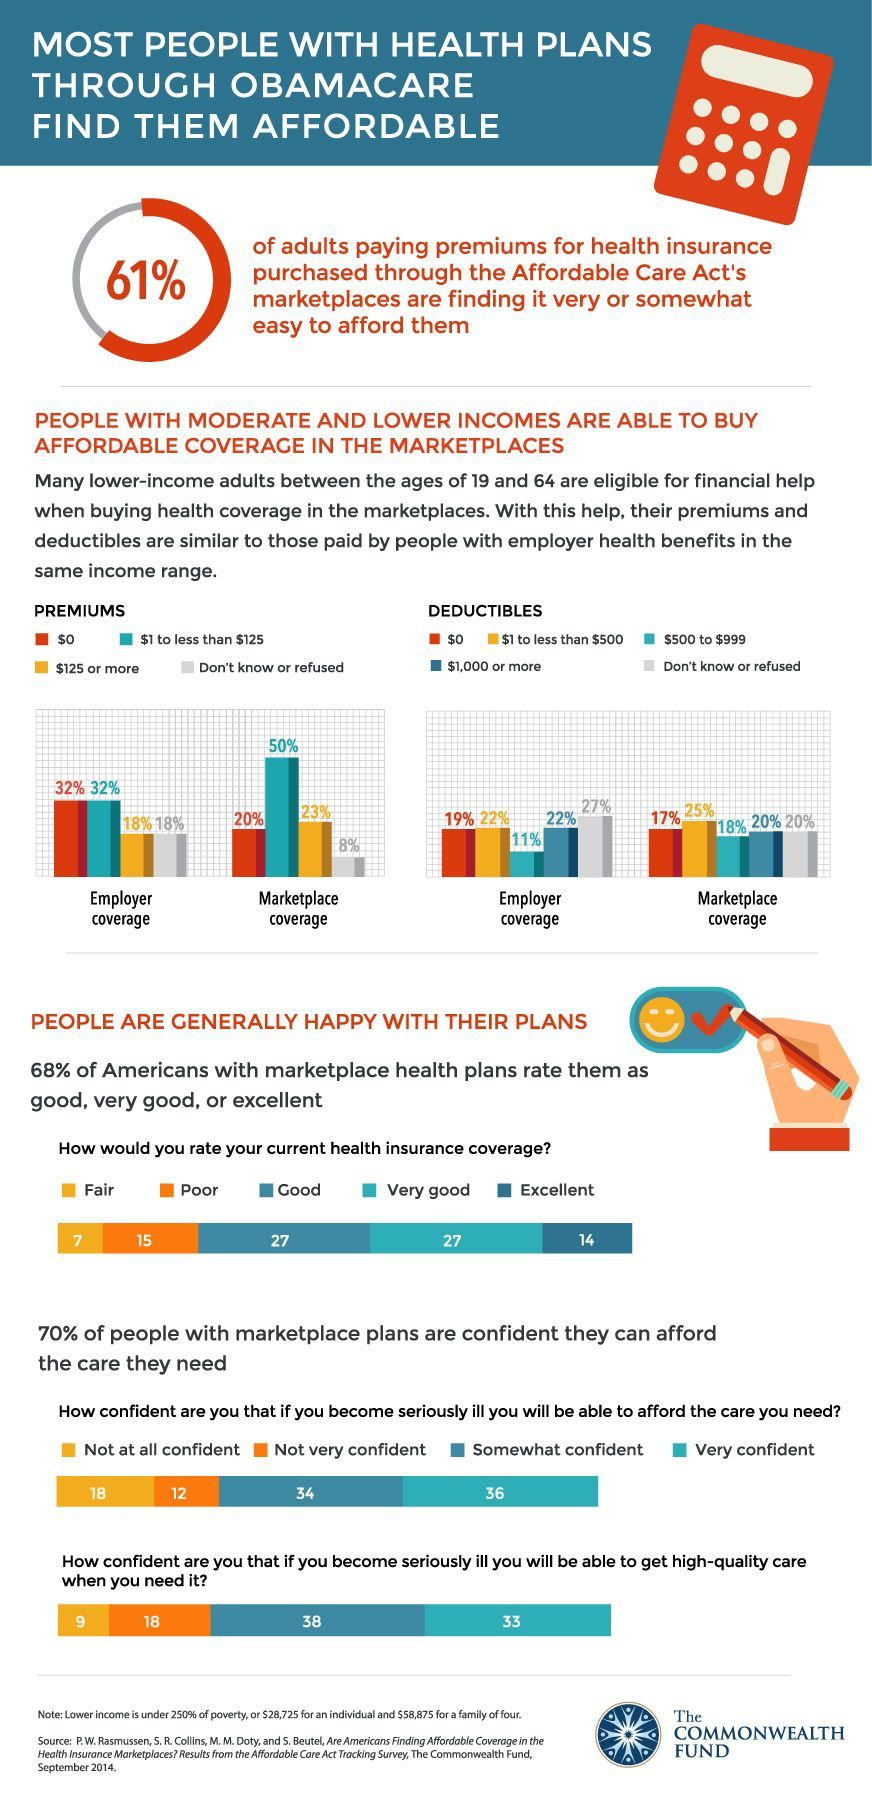 Most People With Health Insurance Plans Through Obamacare Find